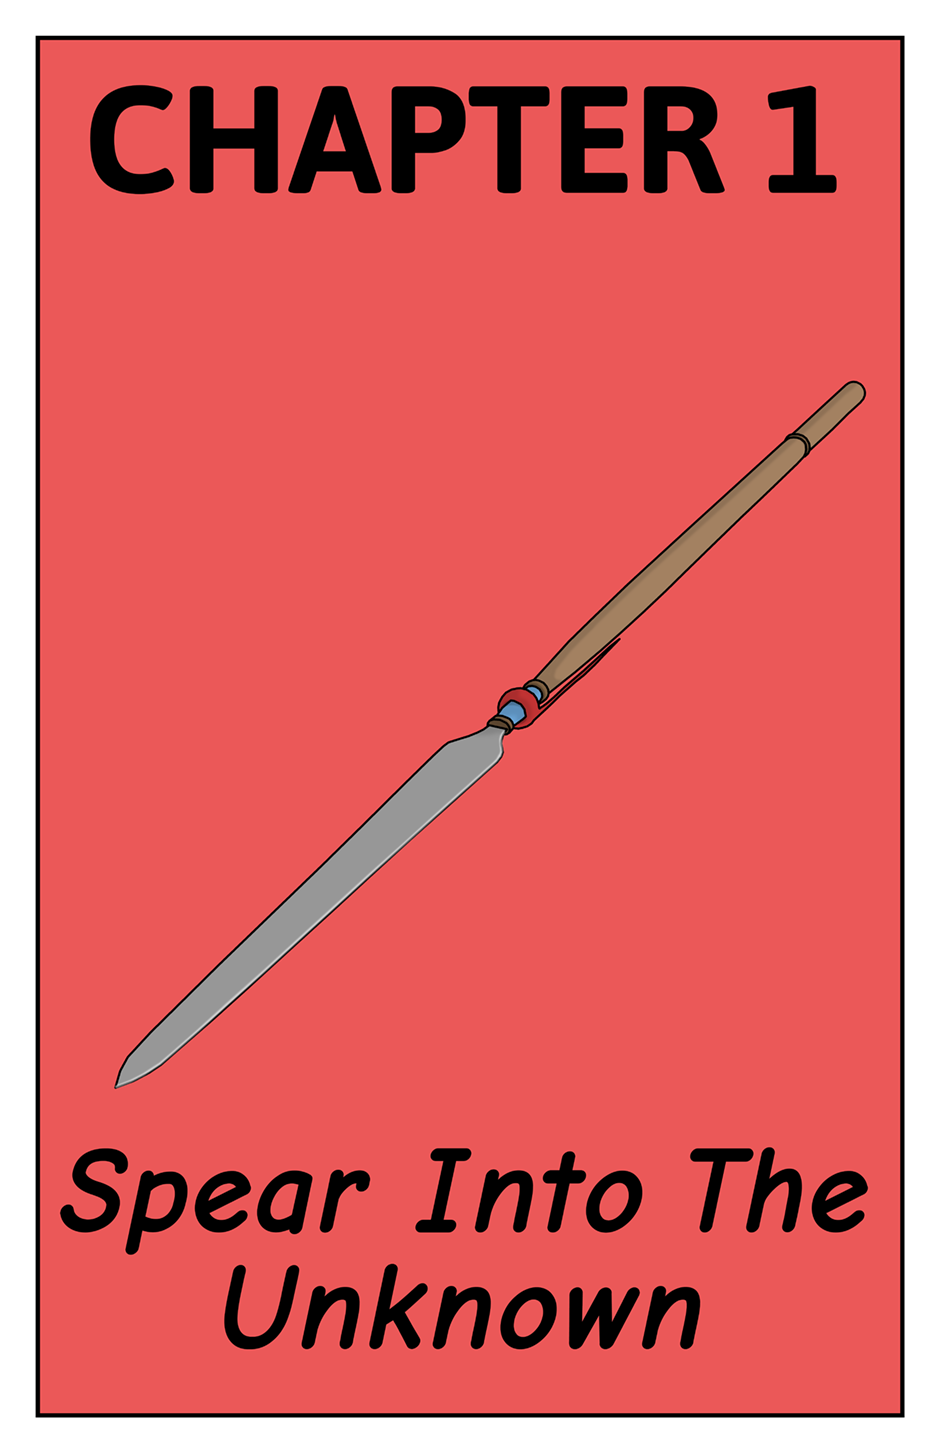 CHAPTER 1 - SPEAR INTO THE UNKNOWN